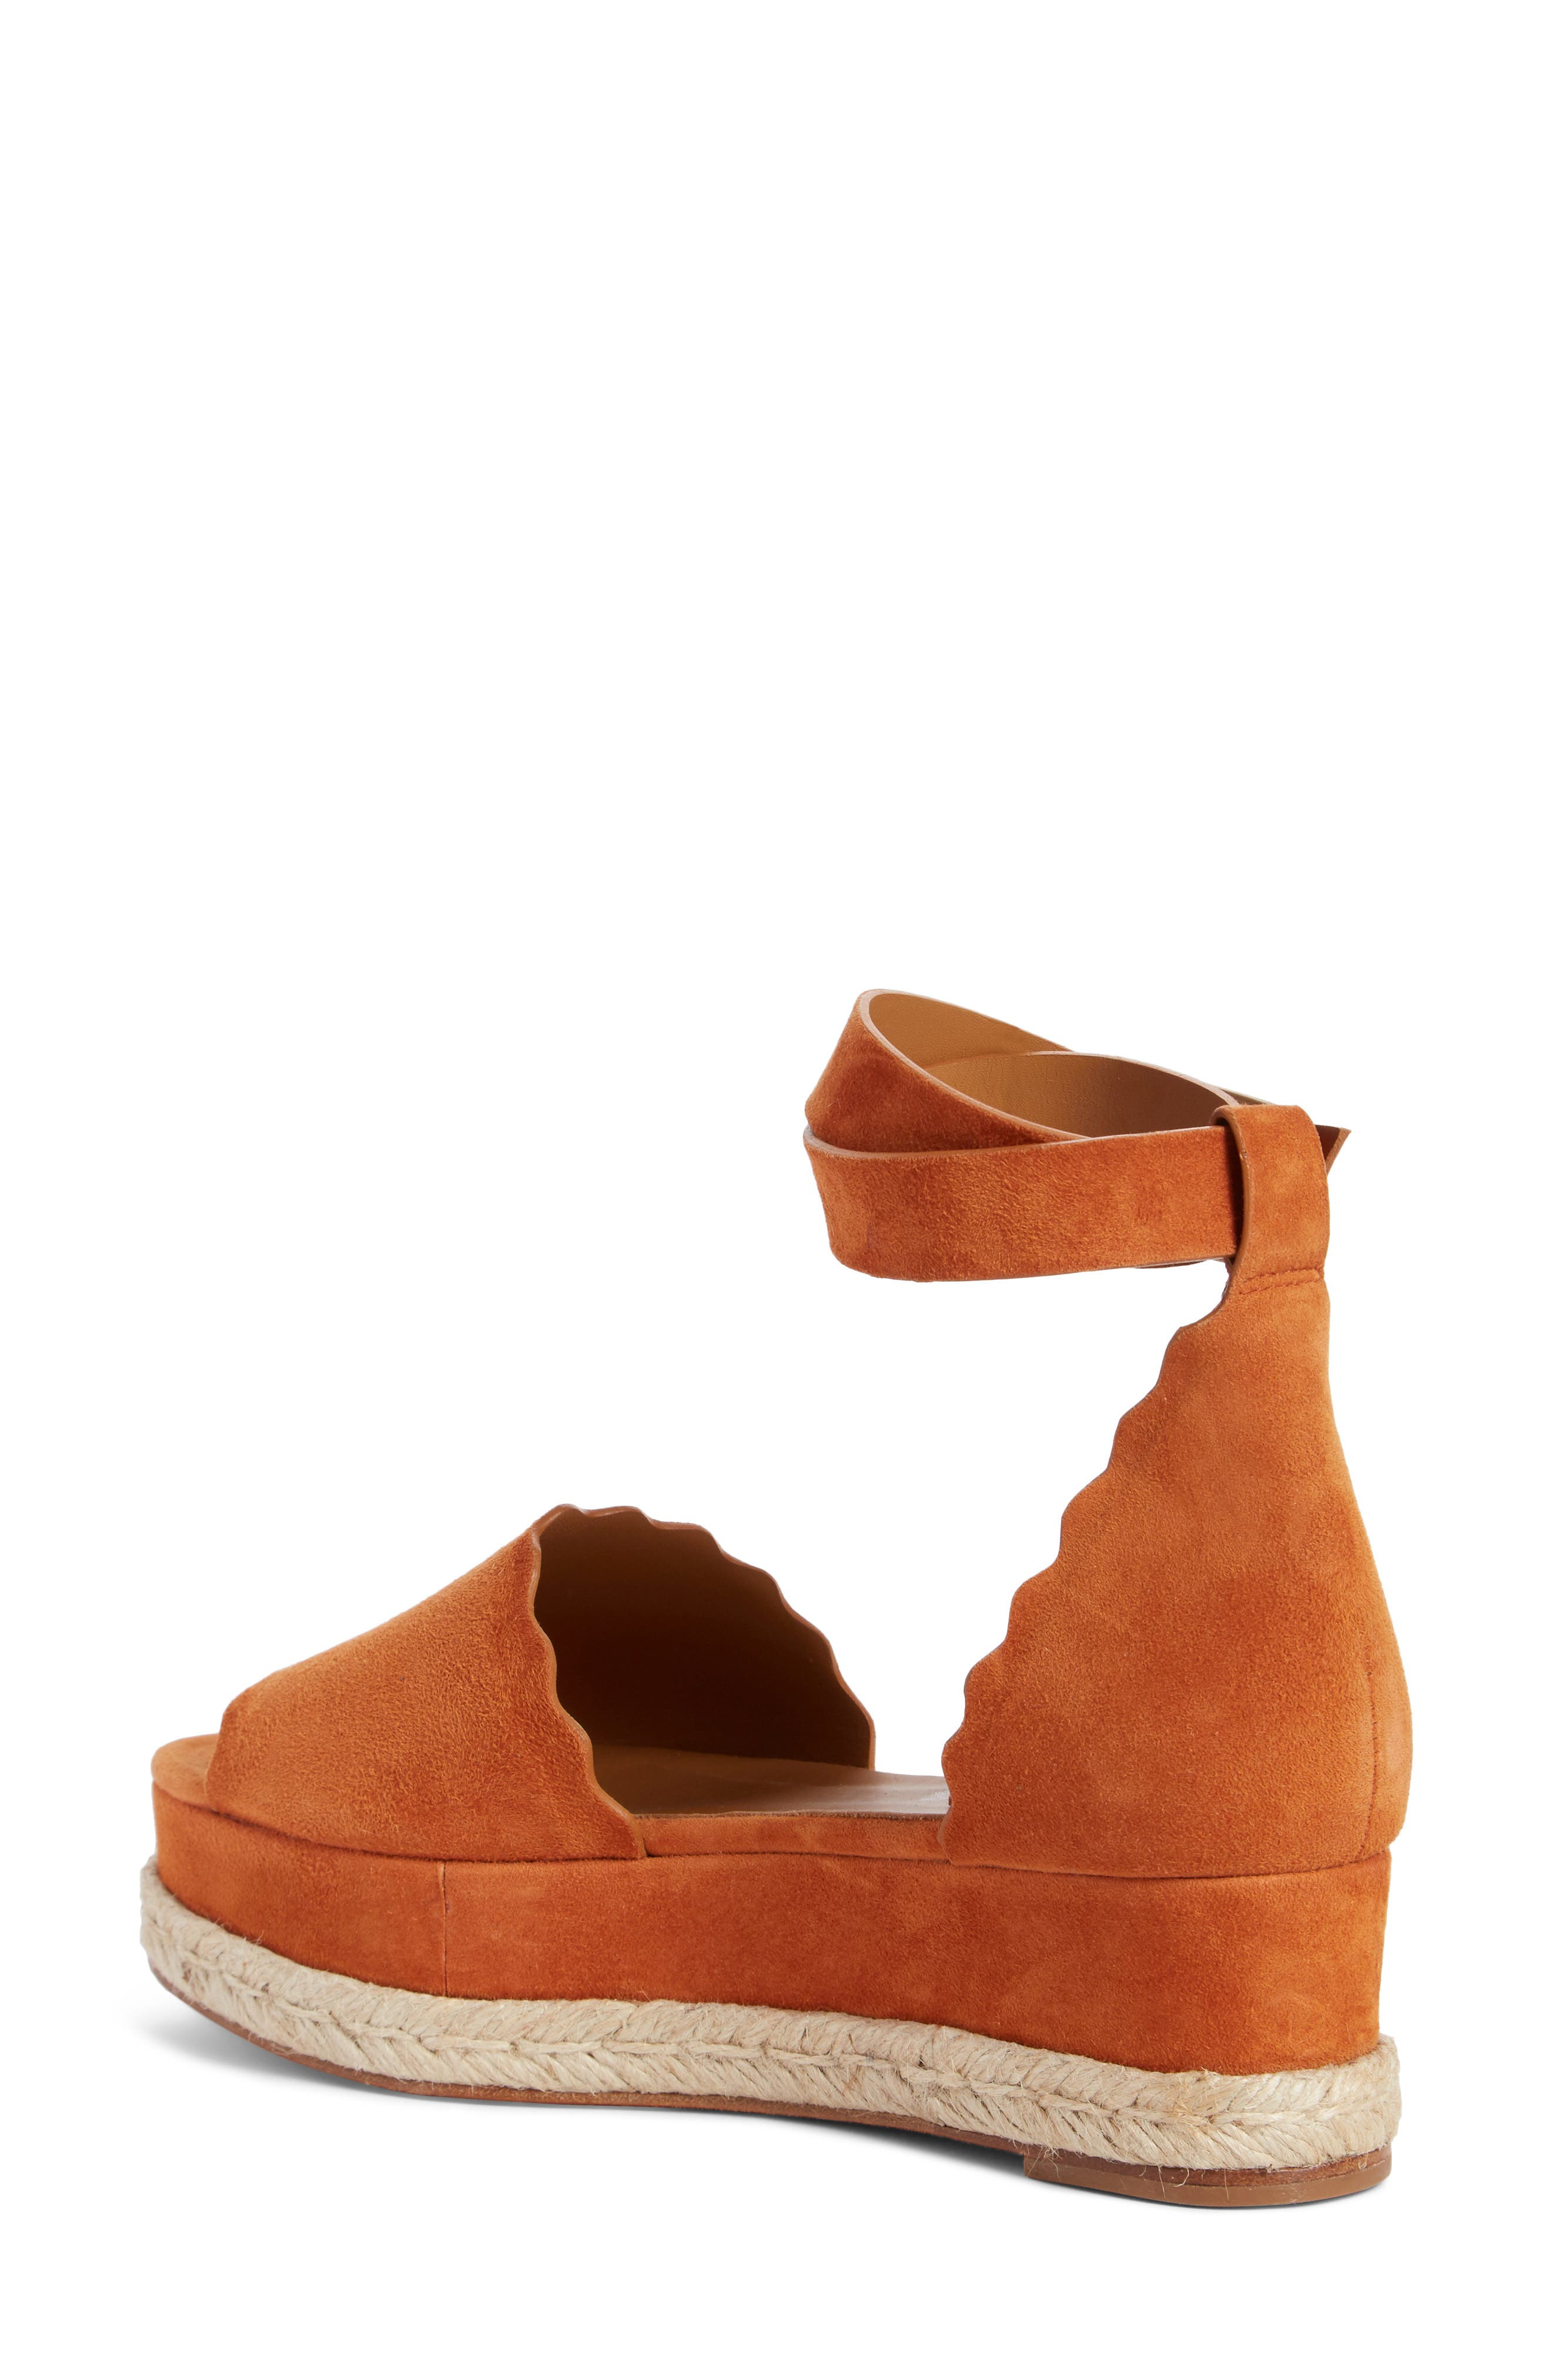 Lauren Espadrille Wedge Sandal,                             Alternate thumbnail 2, color,                             OCHRE DELIGHT